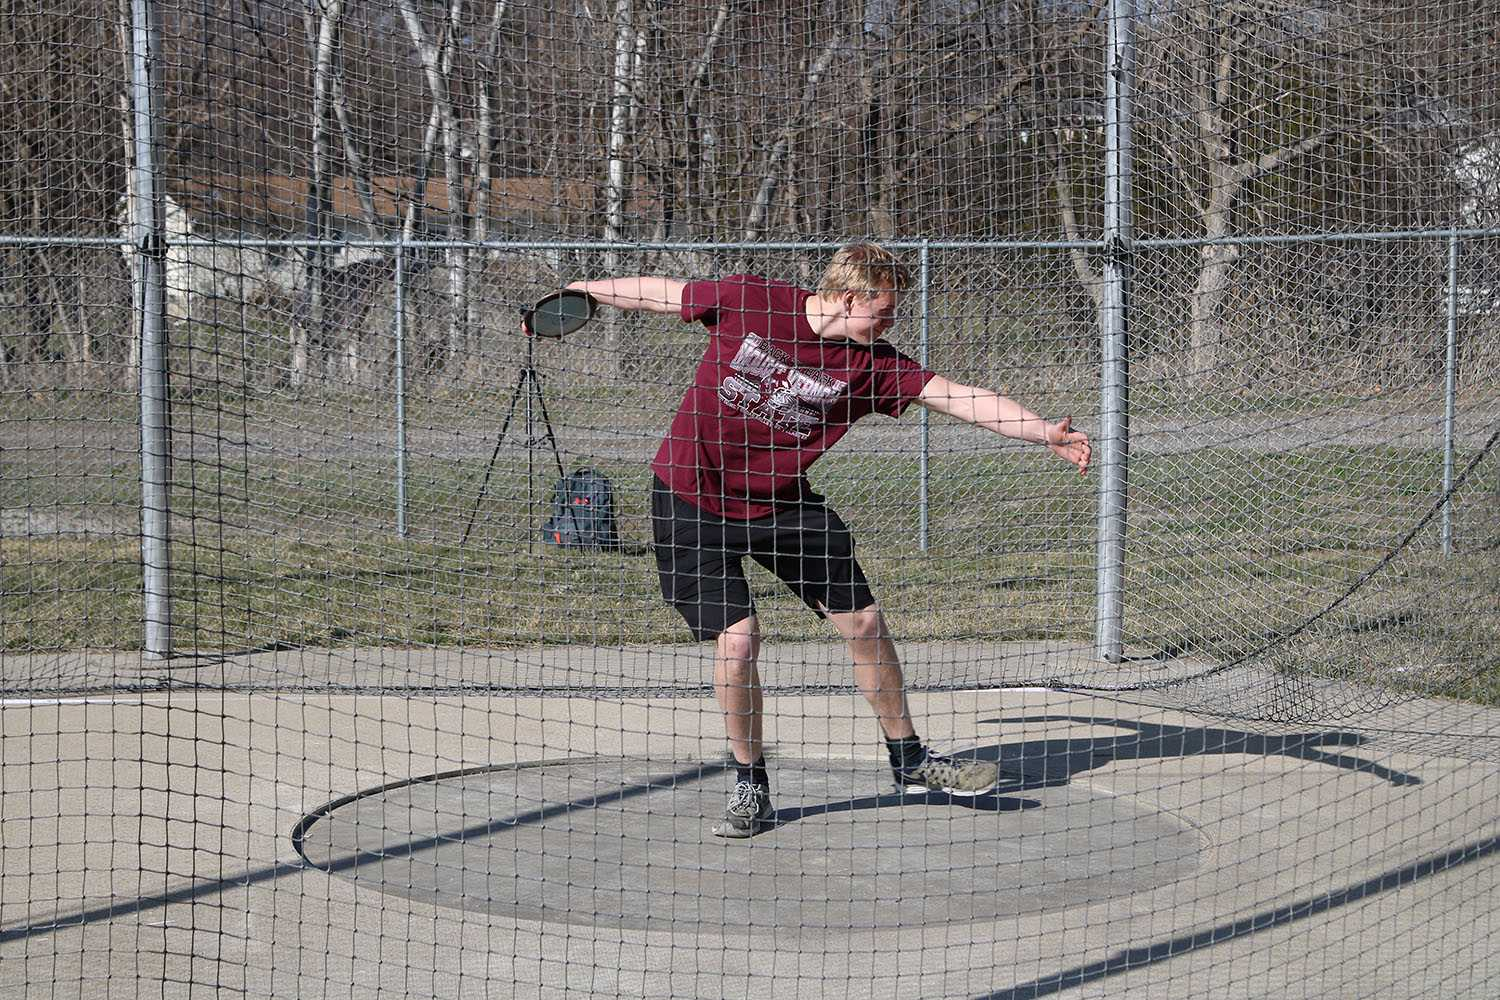 Matt Vislisel's Post Season Discus Run